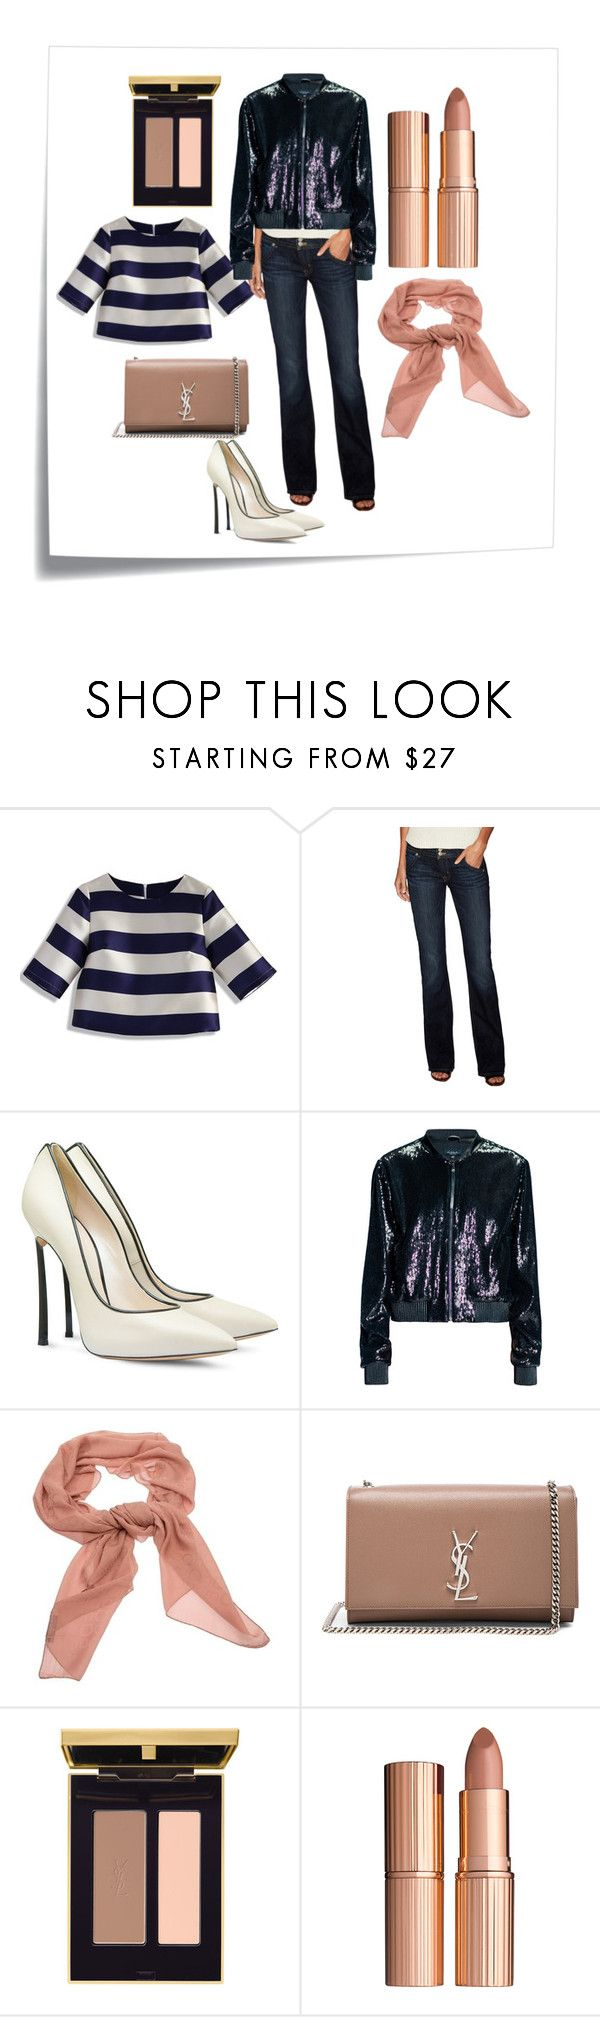 """simple"" by slavulienka on Polyvore featuring Post-It, Chicwish, Hudson Jeans, Casadei, Leka, Salvatore Ferragamo, Yves Saint Laurent and Charlotte Tilbury"